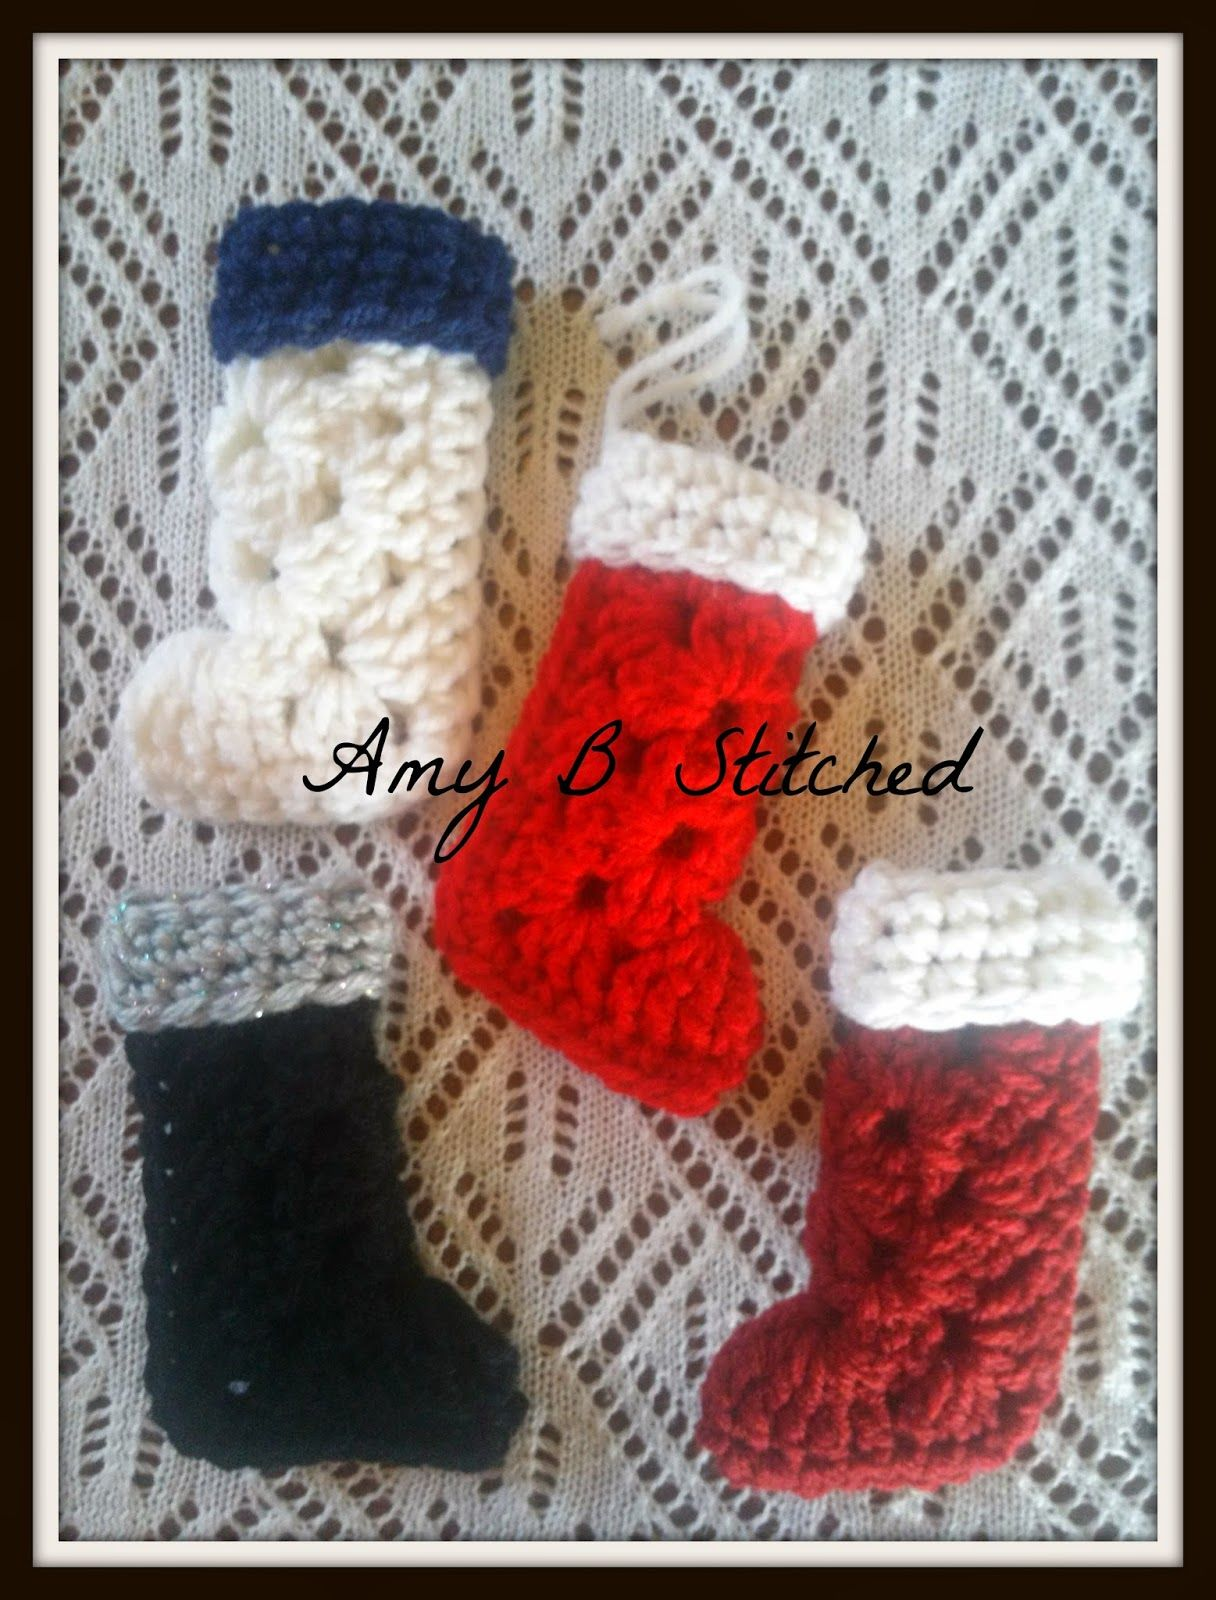 Granny square stocking ornament by amy b stitched free crochet granny square stocking ornament by amy b stitched free crochet pattern amysastitchatatime bankloansurffo Image collections